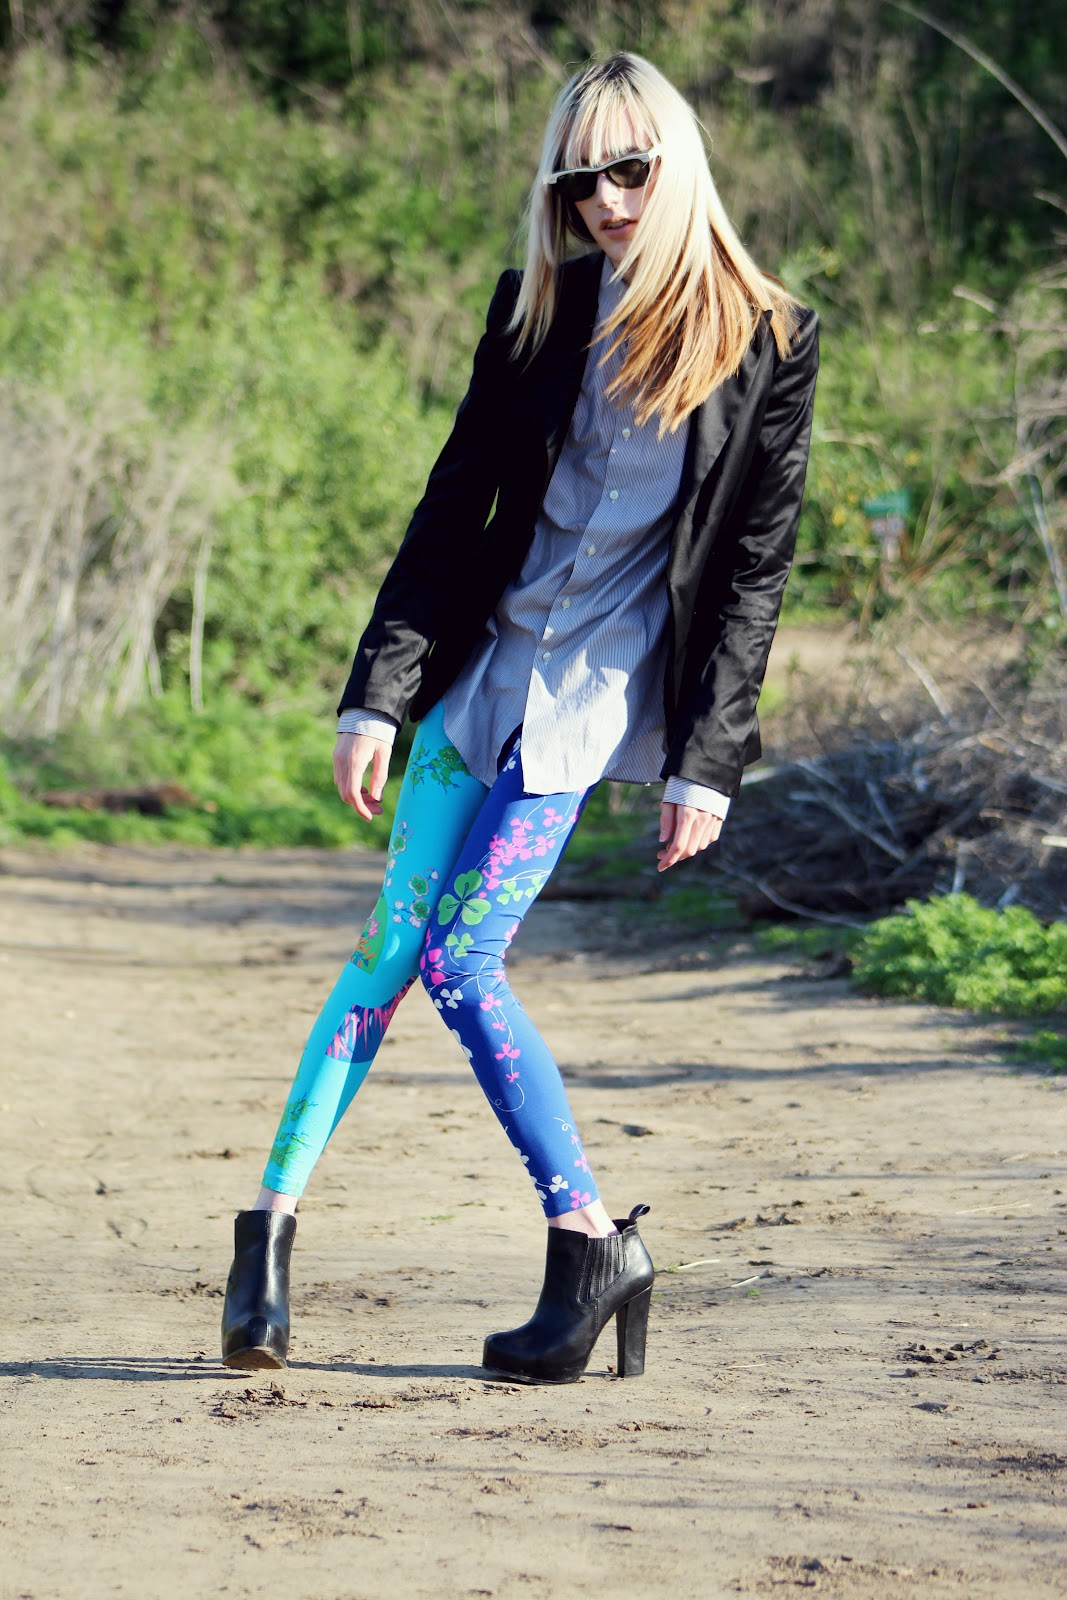 Vomit Fashion: Spring into Hiking